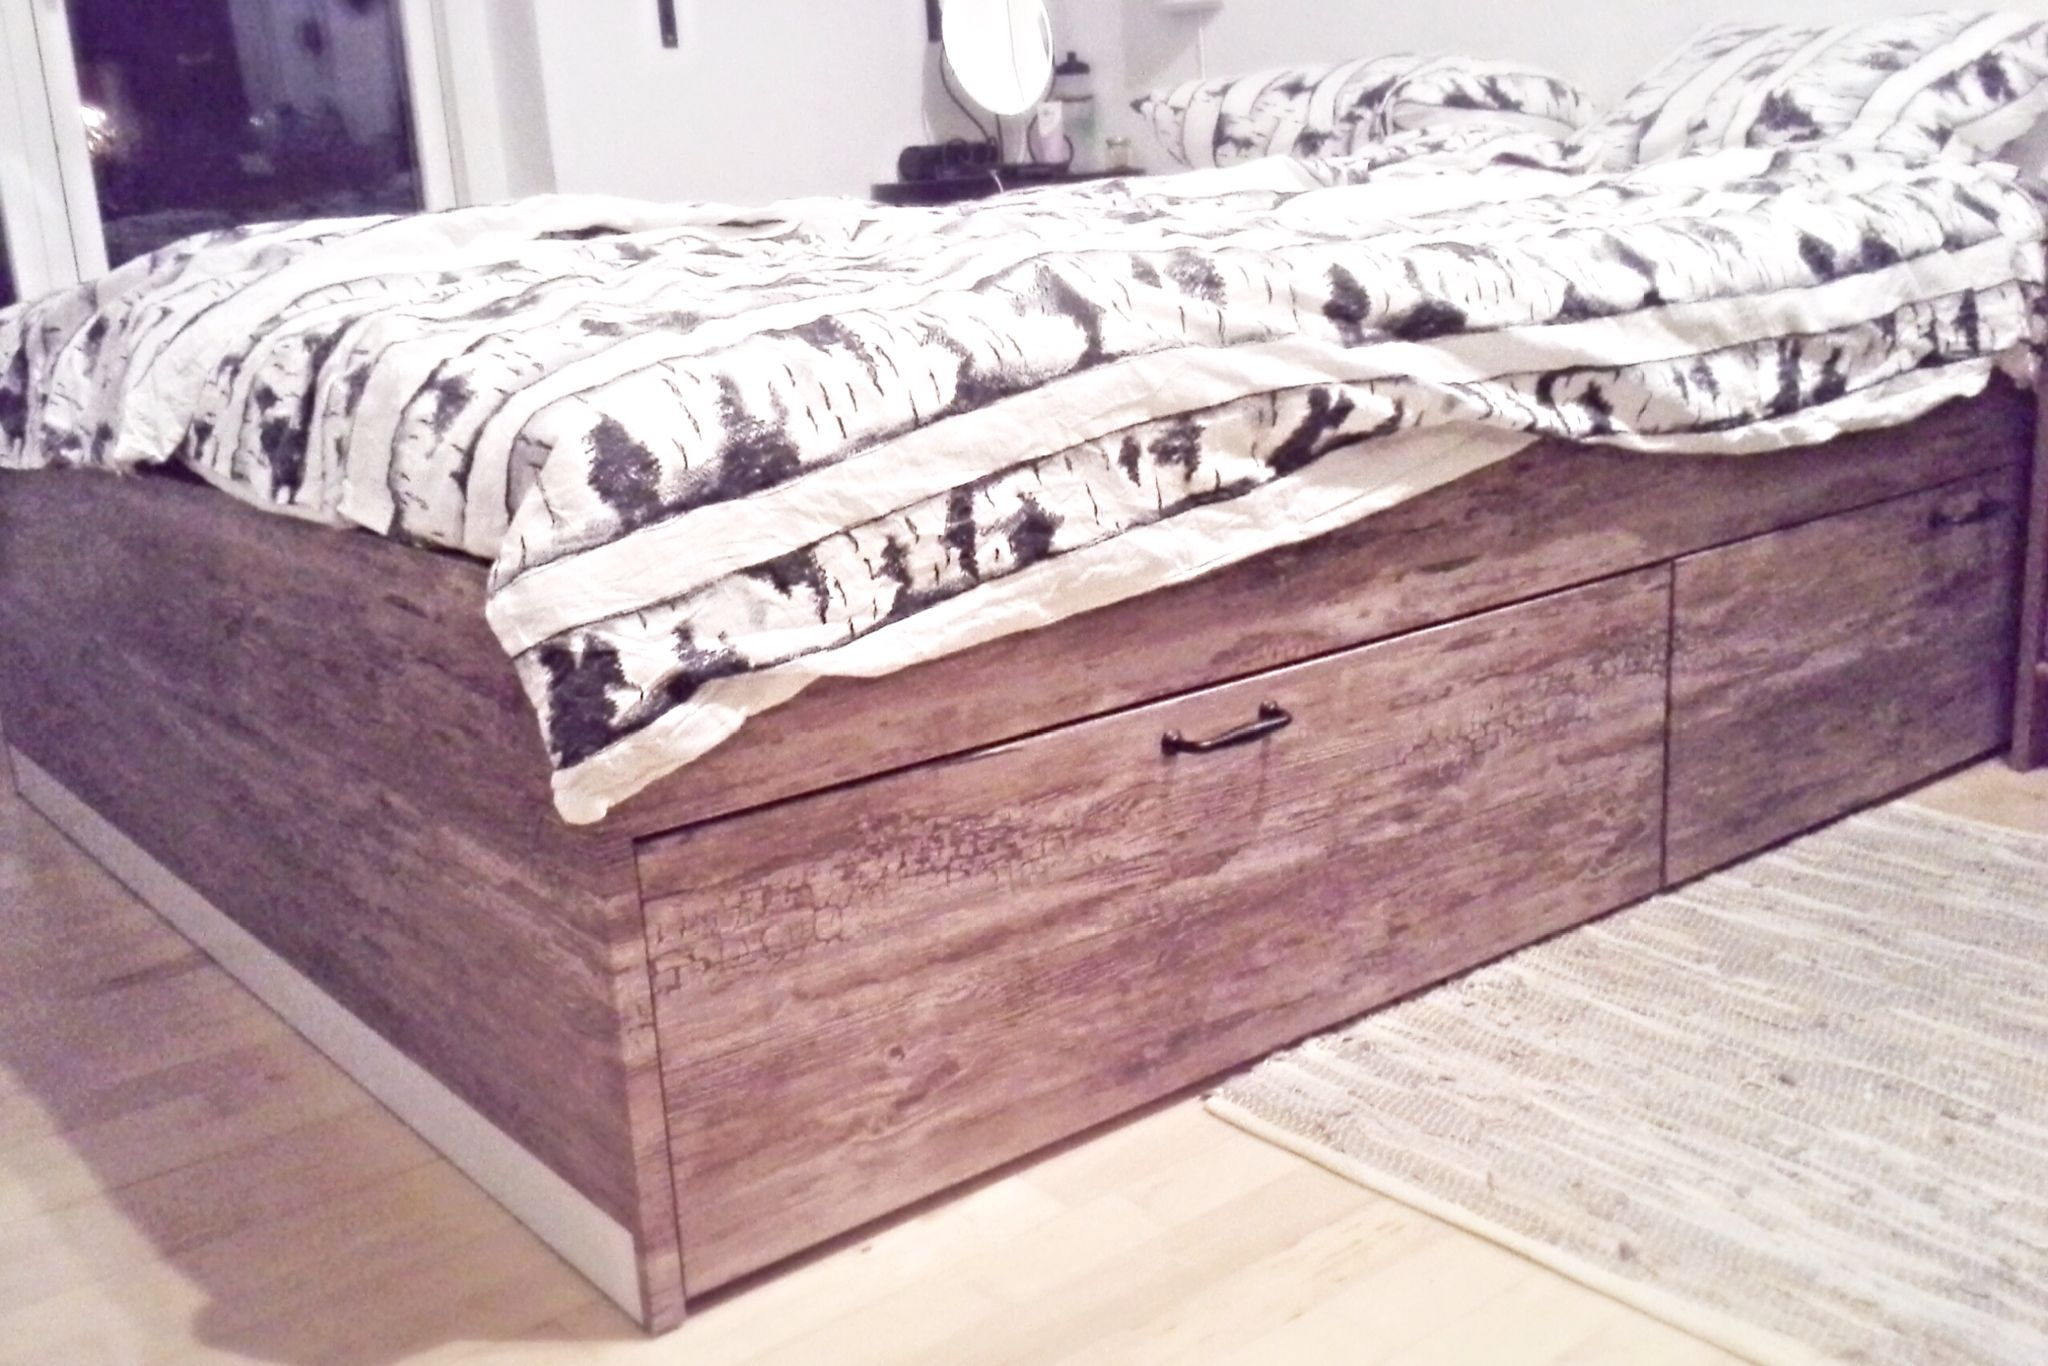 My new hacked Ikea bed Ikea Brimnes with wood adhesive and